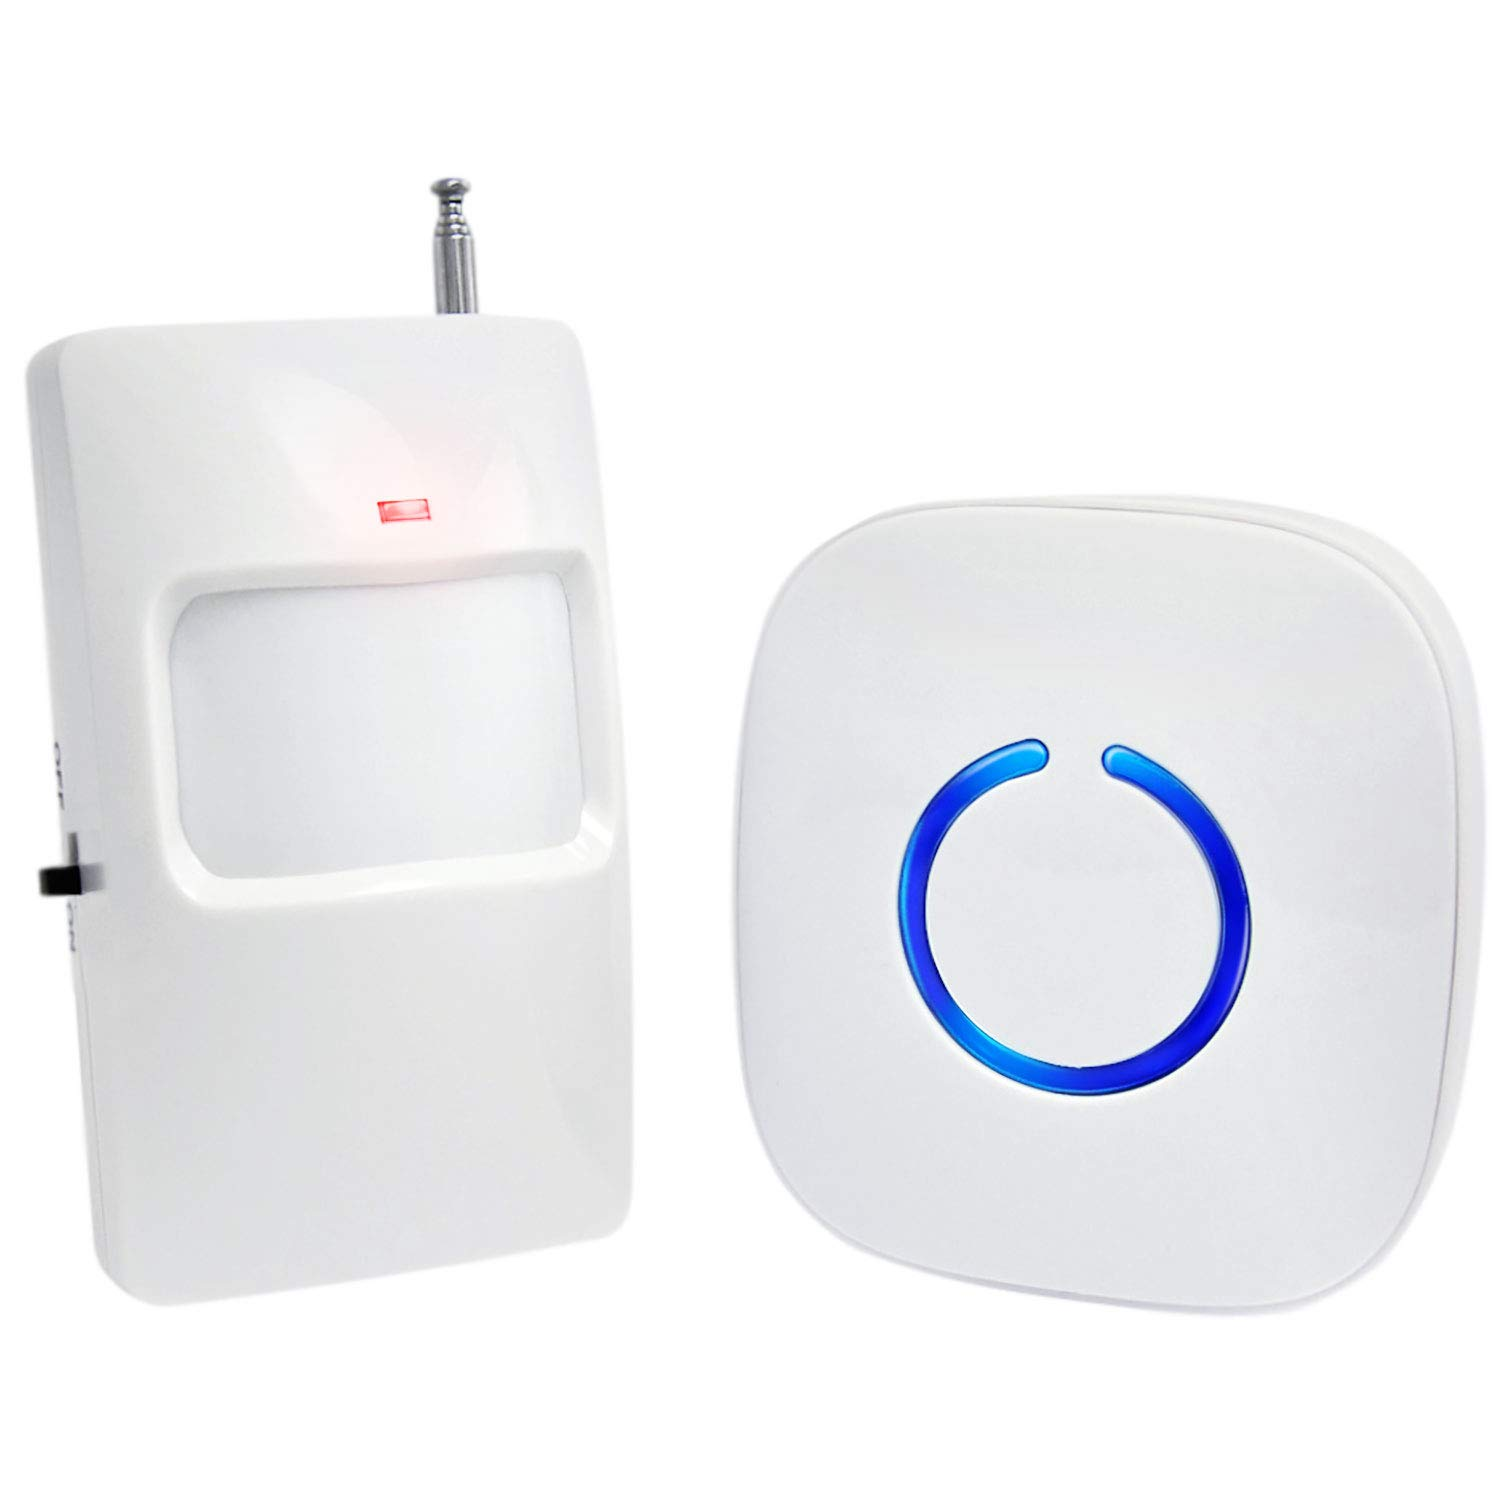 Sadotech Wireless Pir Motion Sensor Doorbell Operating Very Basic Tracking With 2 Sensors Lucky Larry At 500 Feet Range Over 50 Chimes White Home Improvement